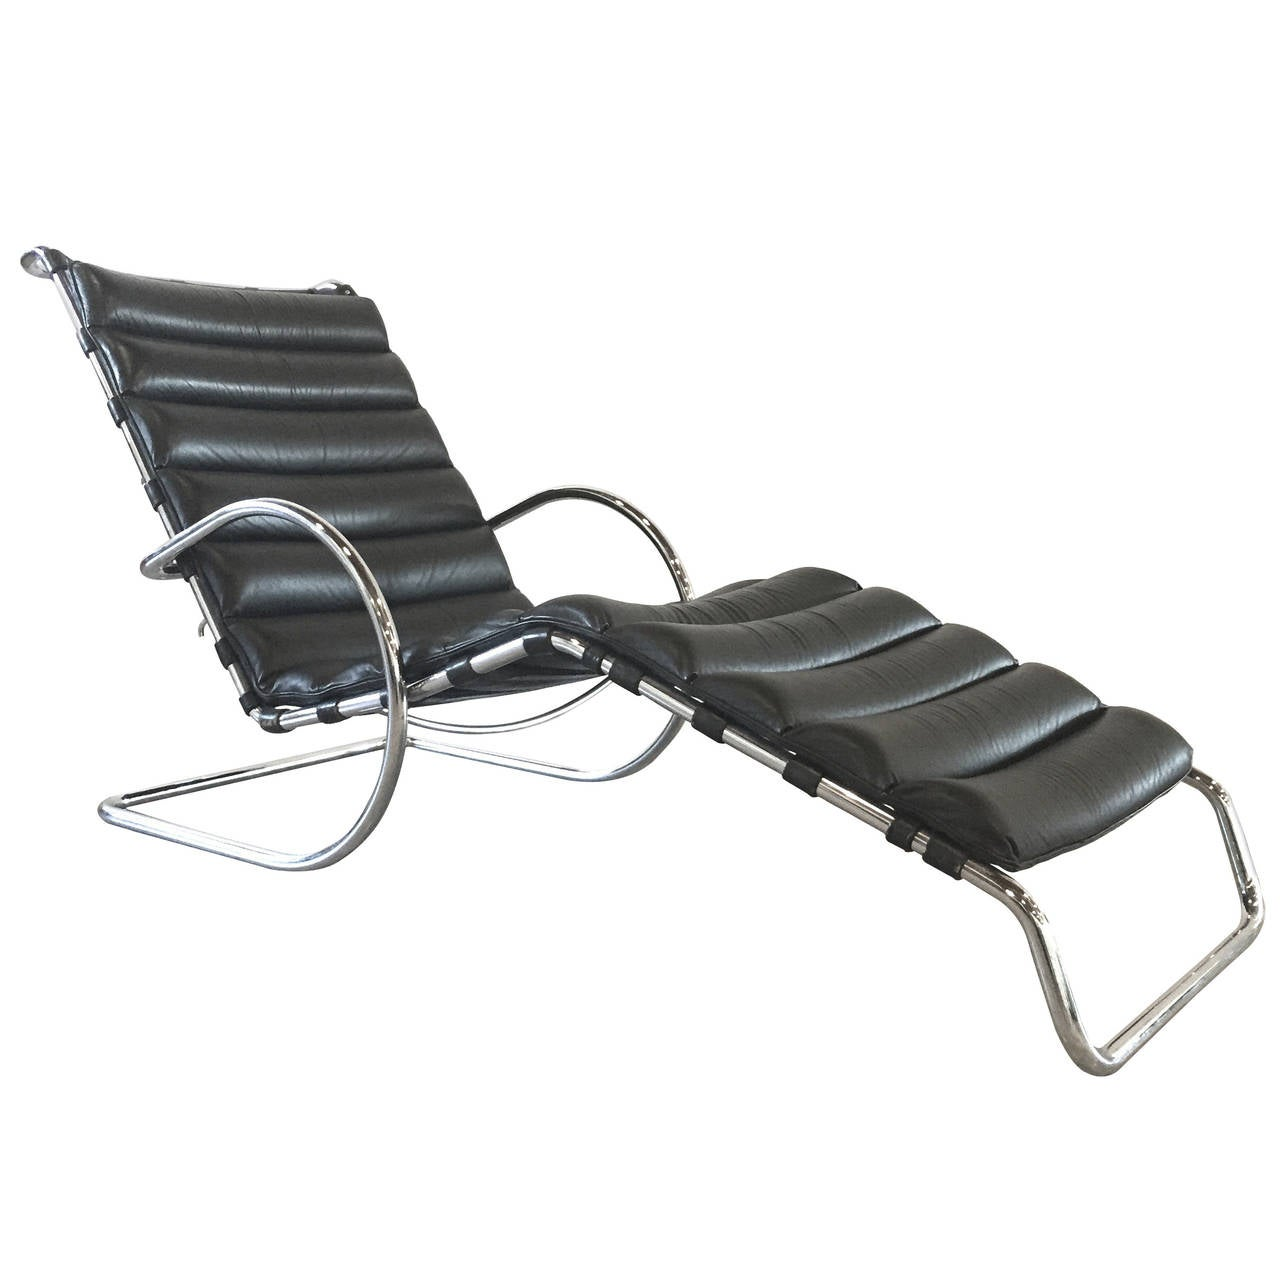 Ludwig mies van der rohe chaise lounge chair on sale at for Chaise longue lockheed lounge